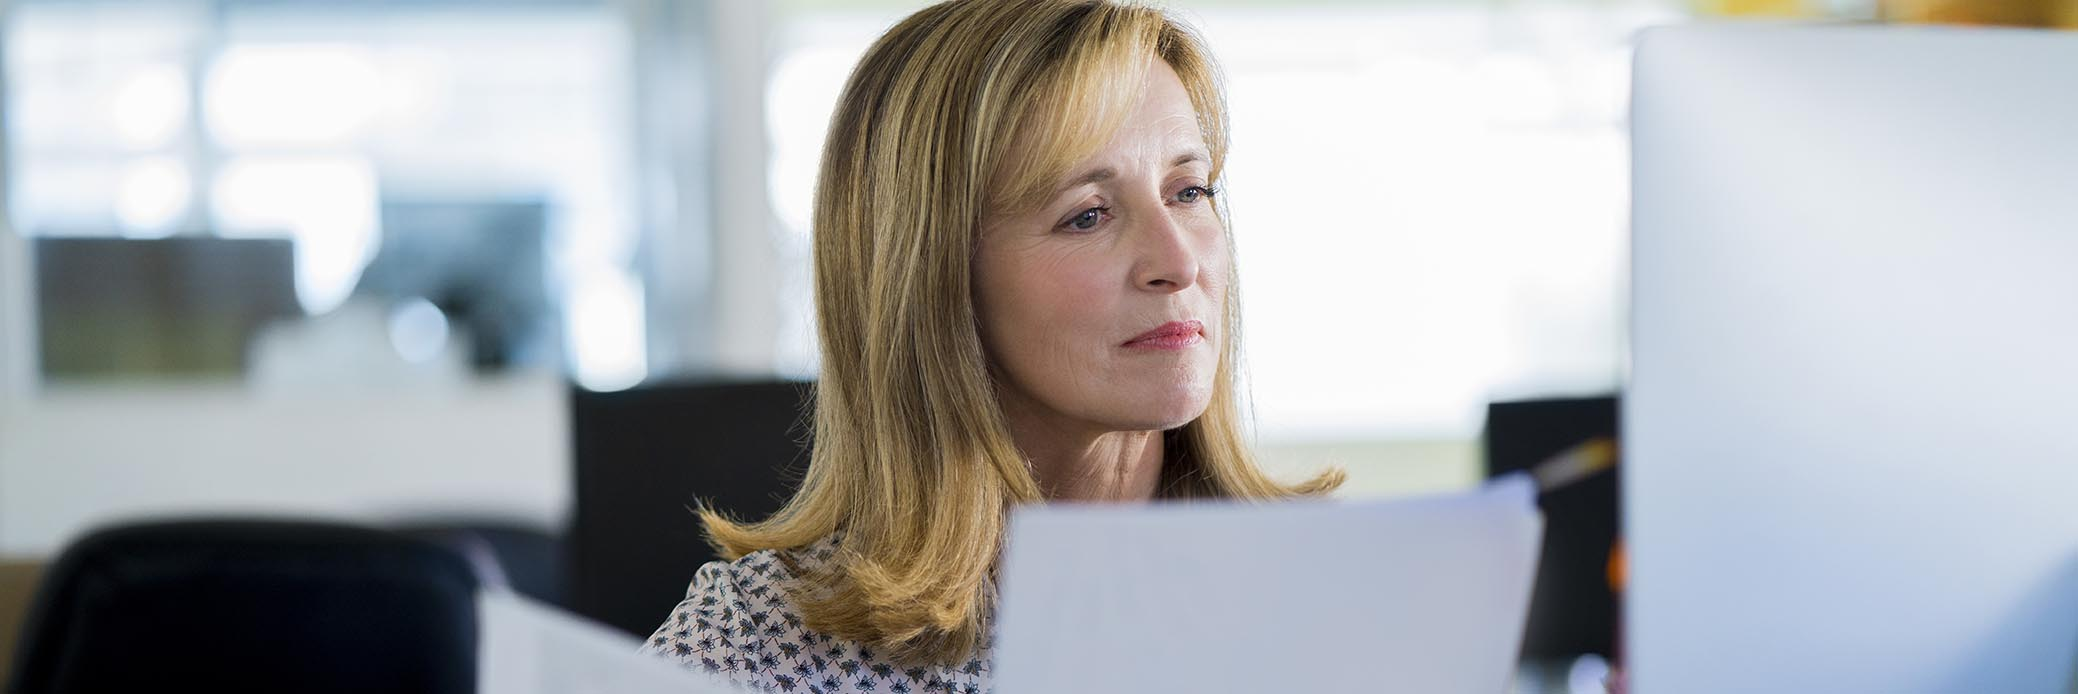 woman in office looking through papers